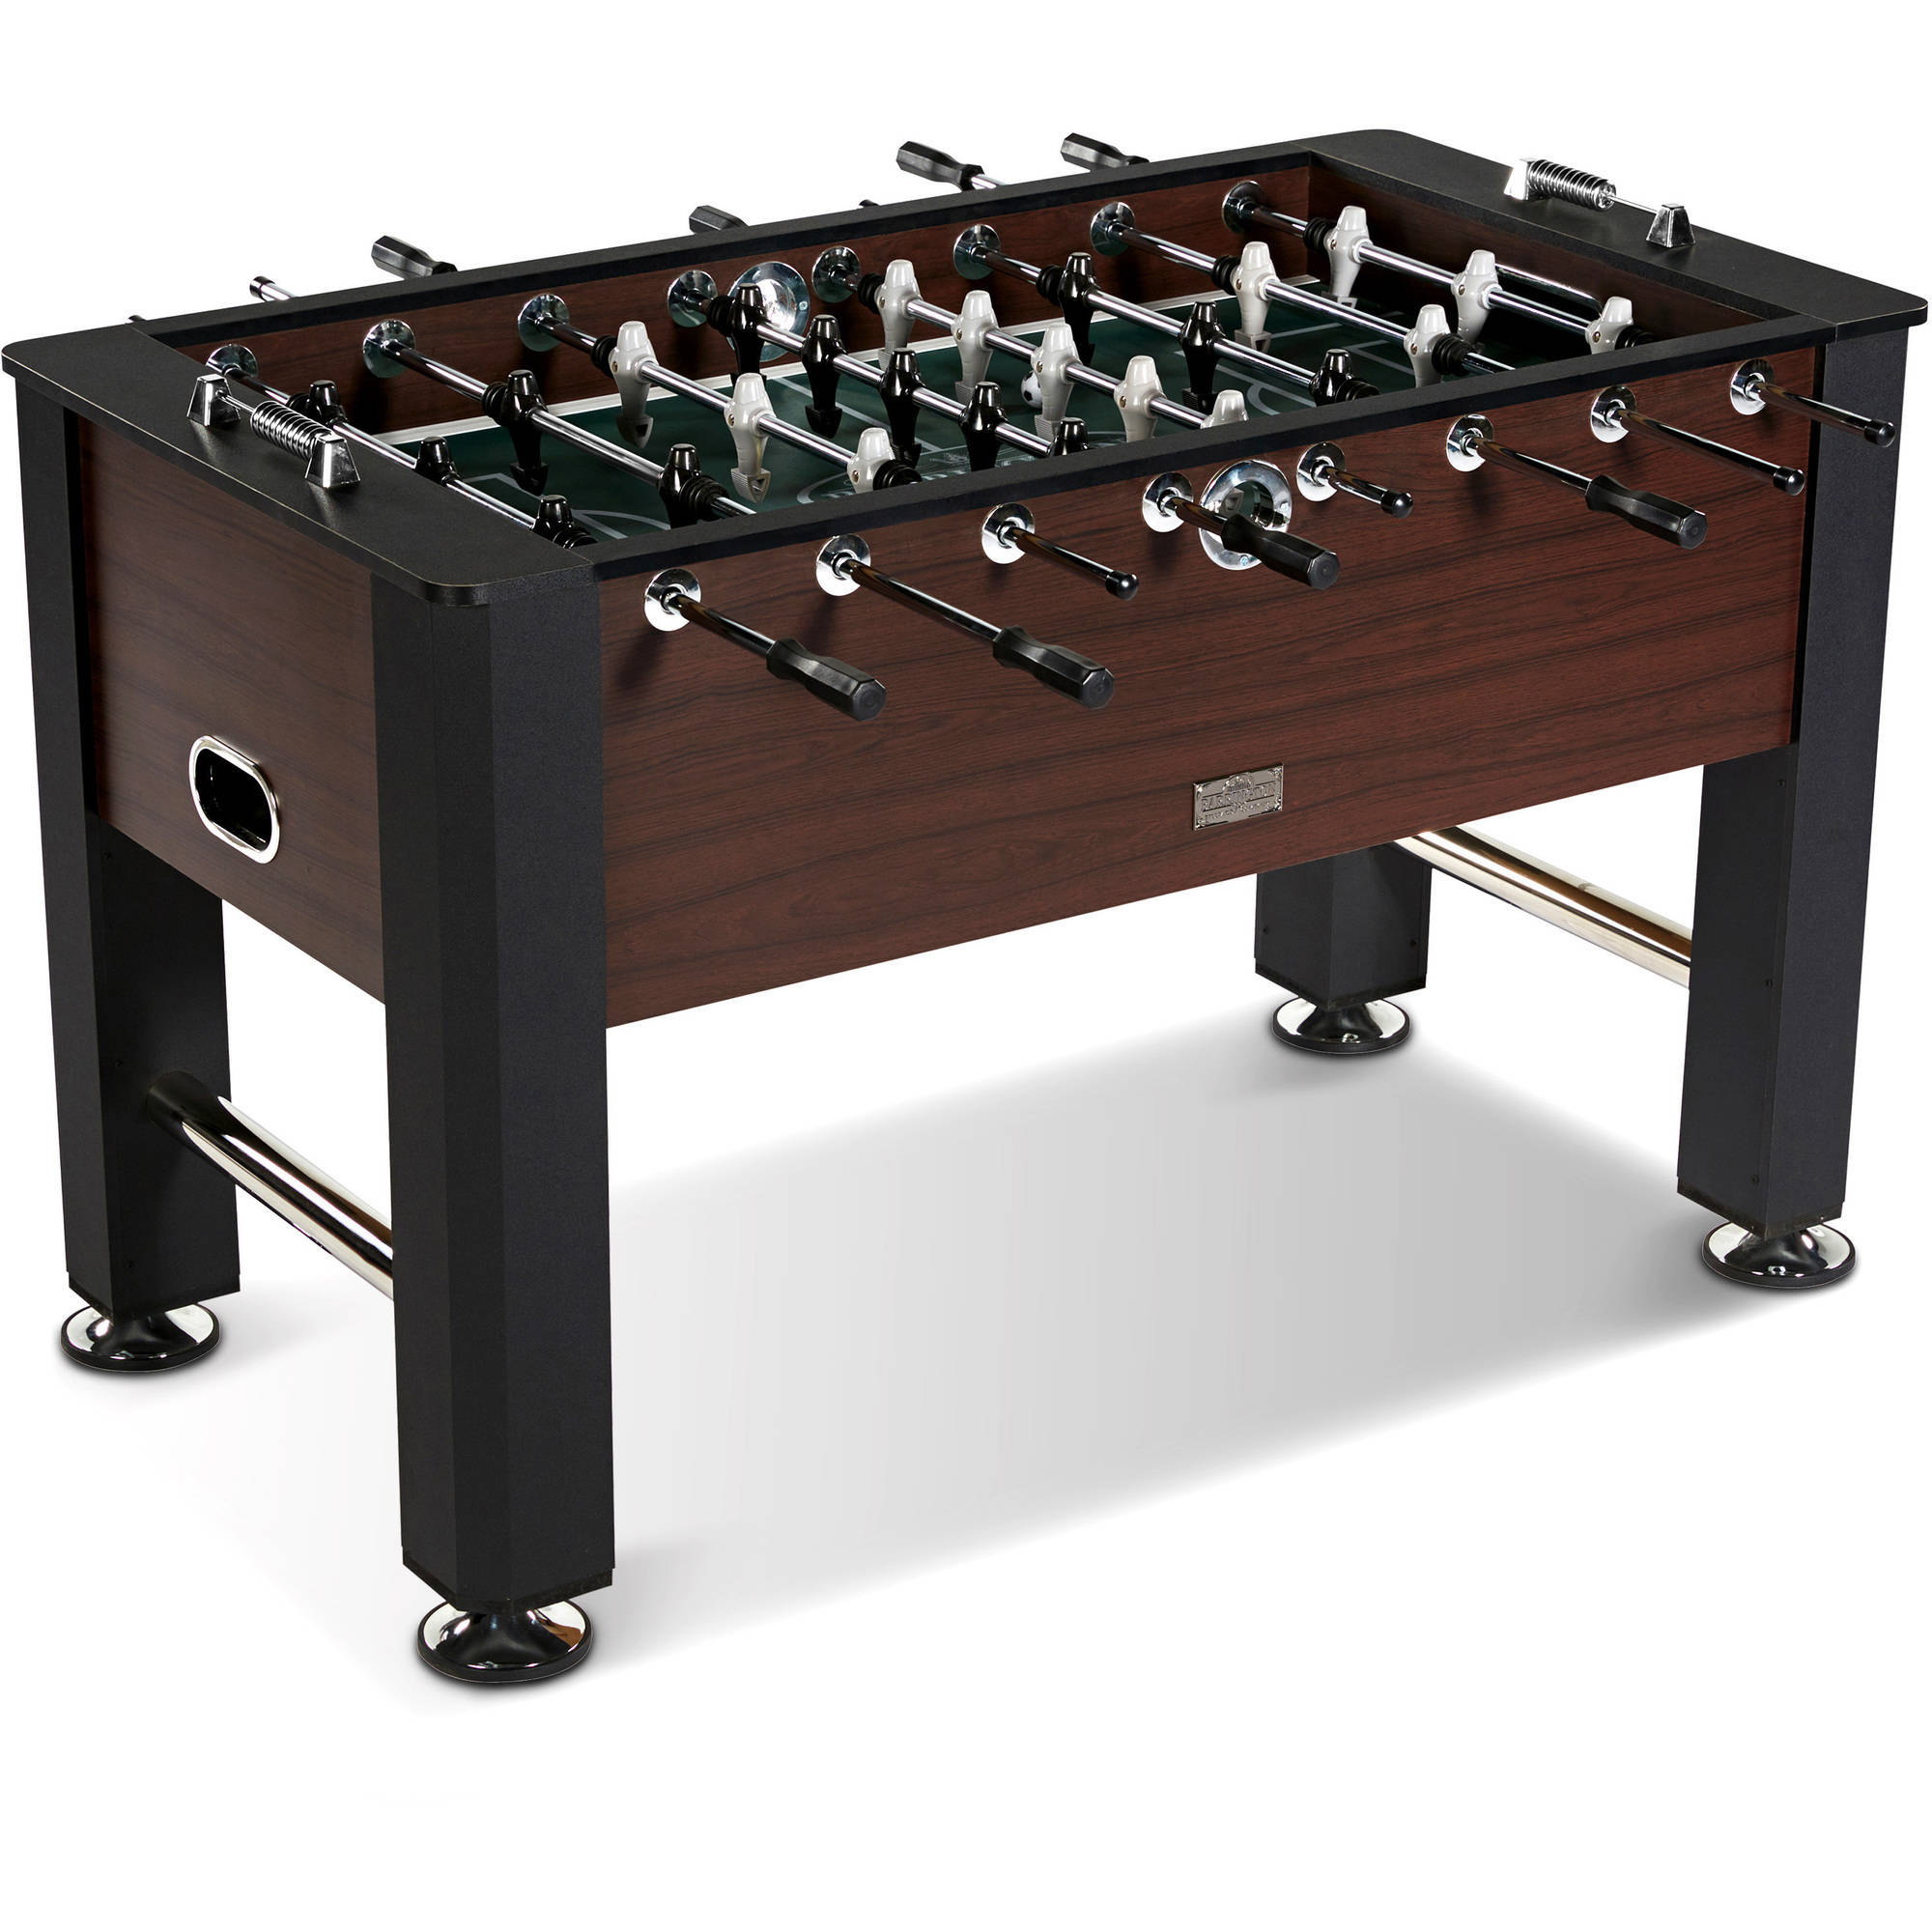 Barrington 56 Inch Furniture Foosball Table, Soccer Table by MEDAL SPORTS TAIWAN CORPORATION